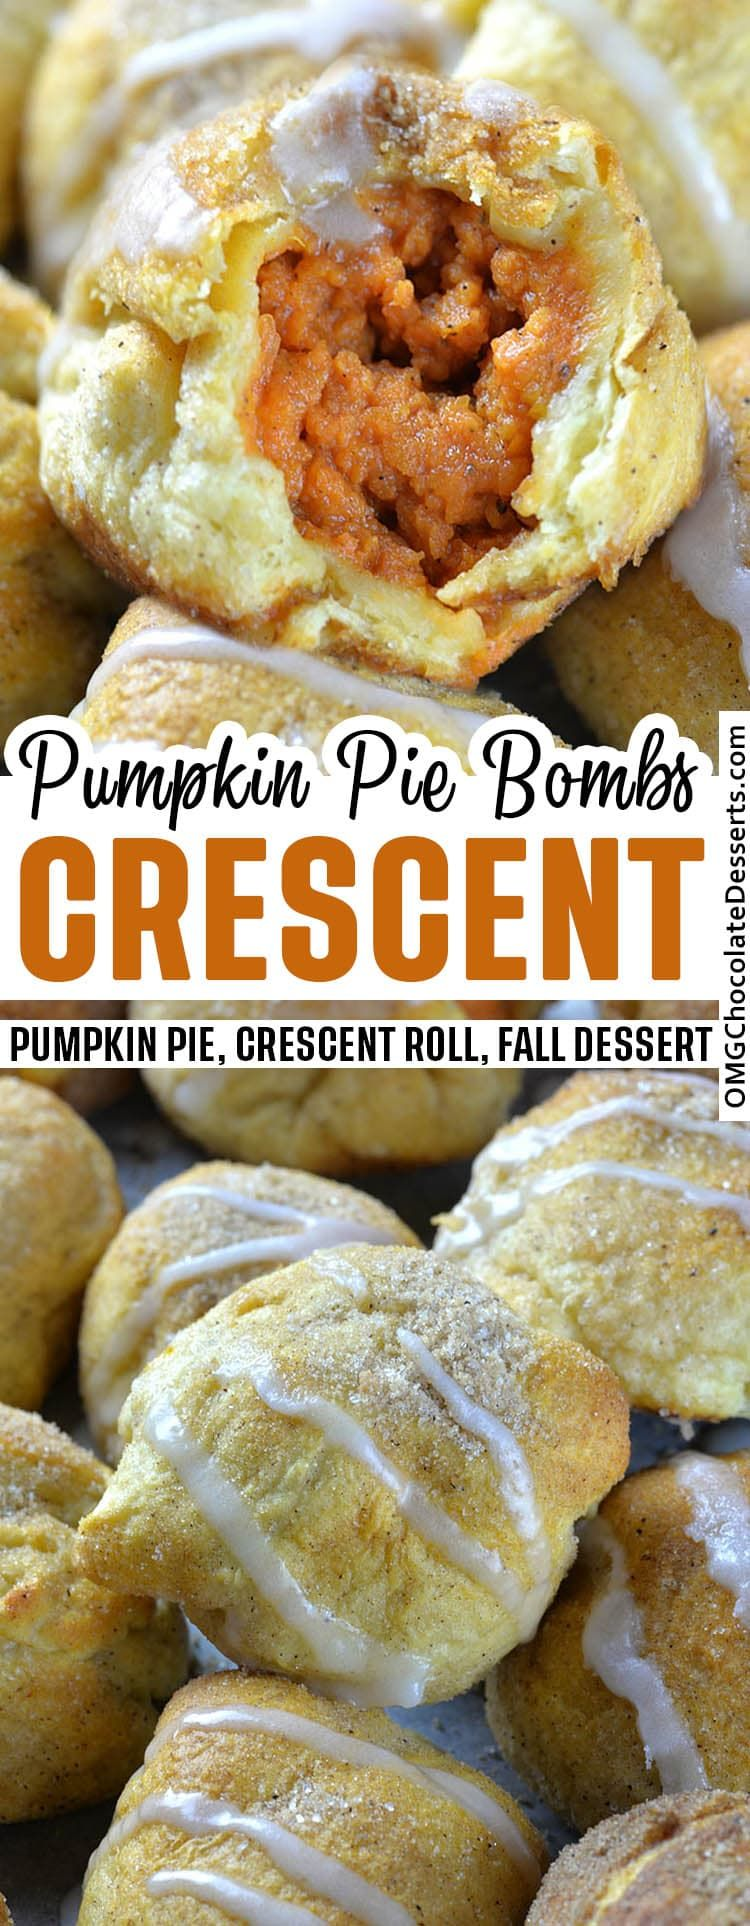 Pumpkin Pie Bombs are delicious dessert for fall, and also a great snack or even breakfast since they are made with crescent rolls. #pumpkin #pie #crescent #rolls #fall #dessert